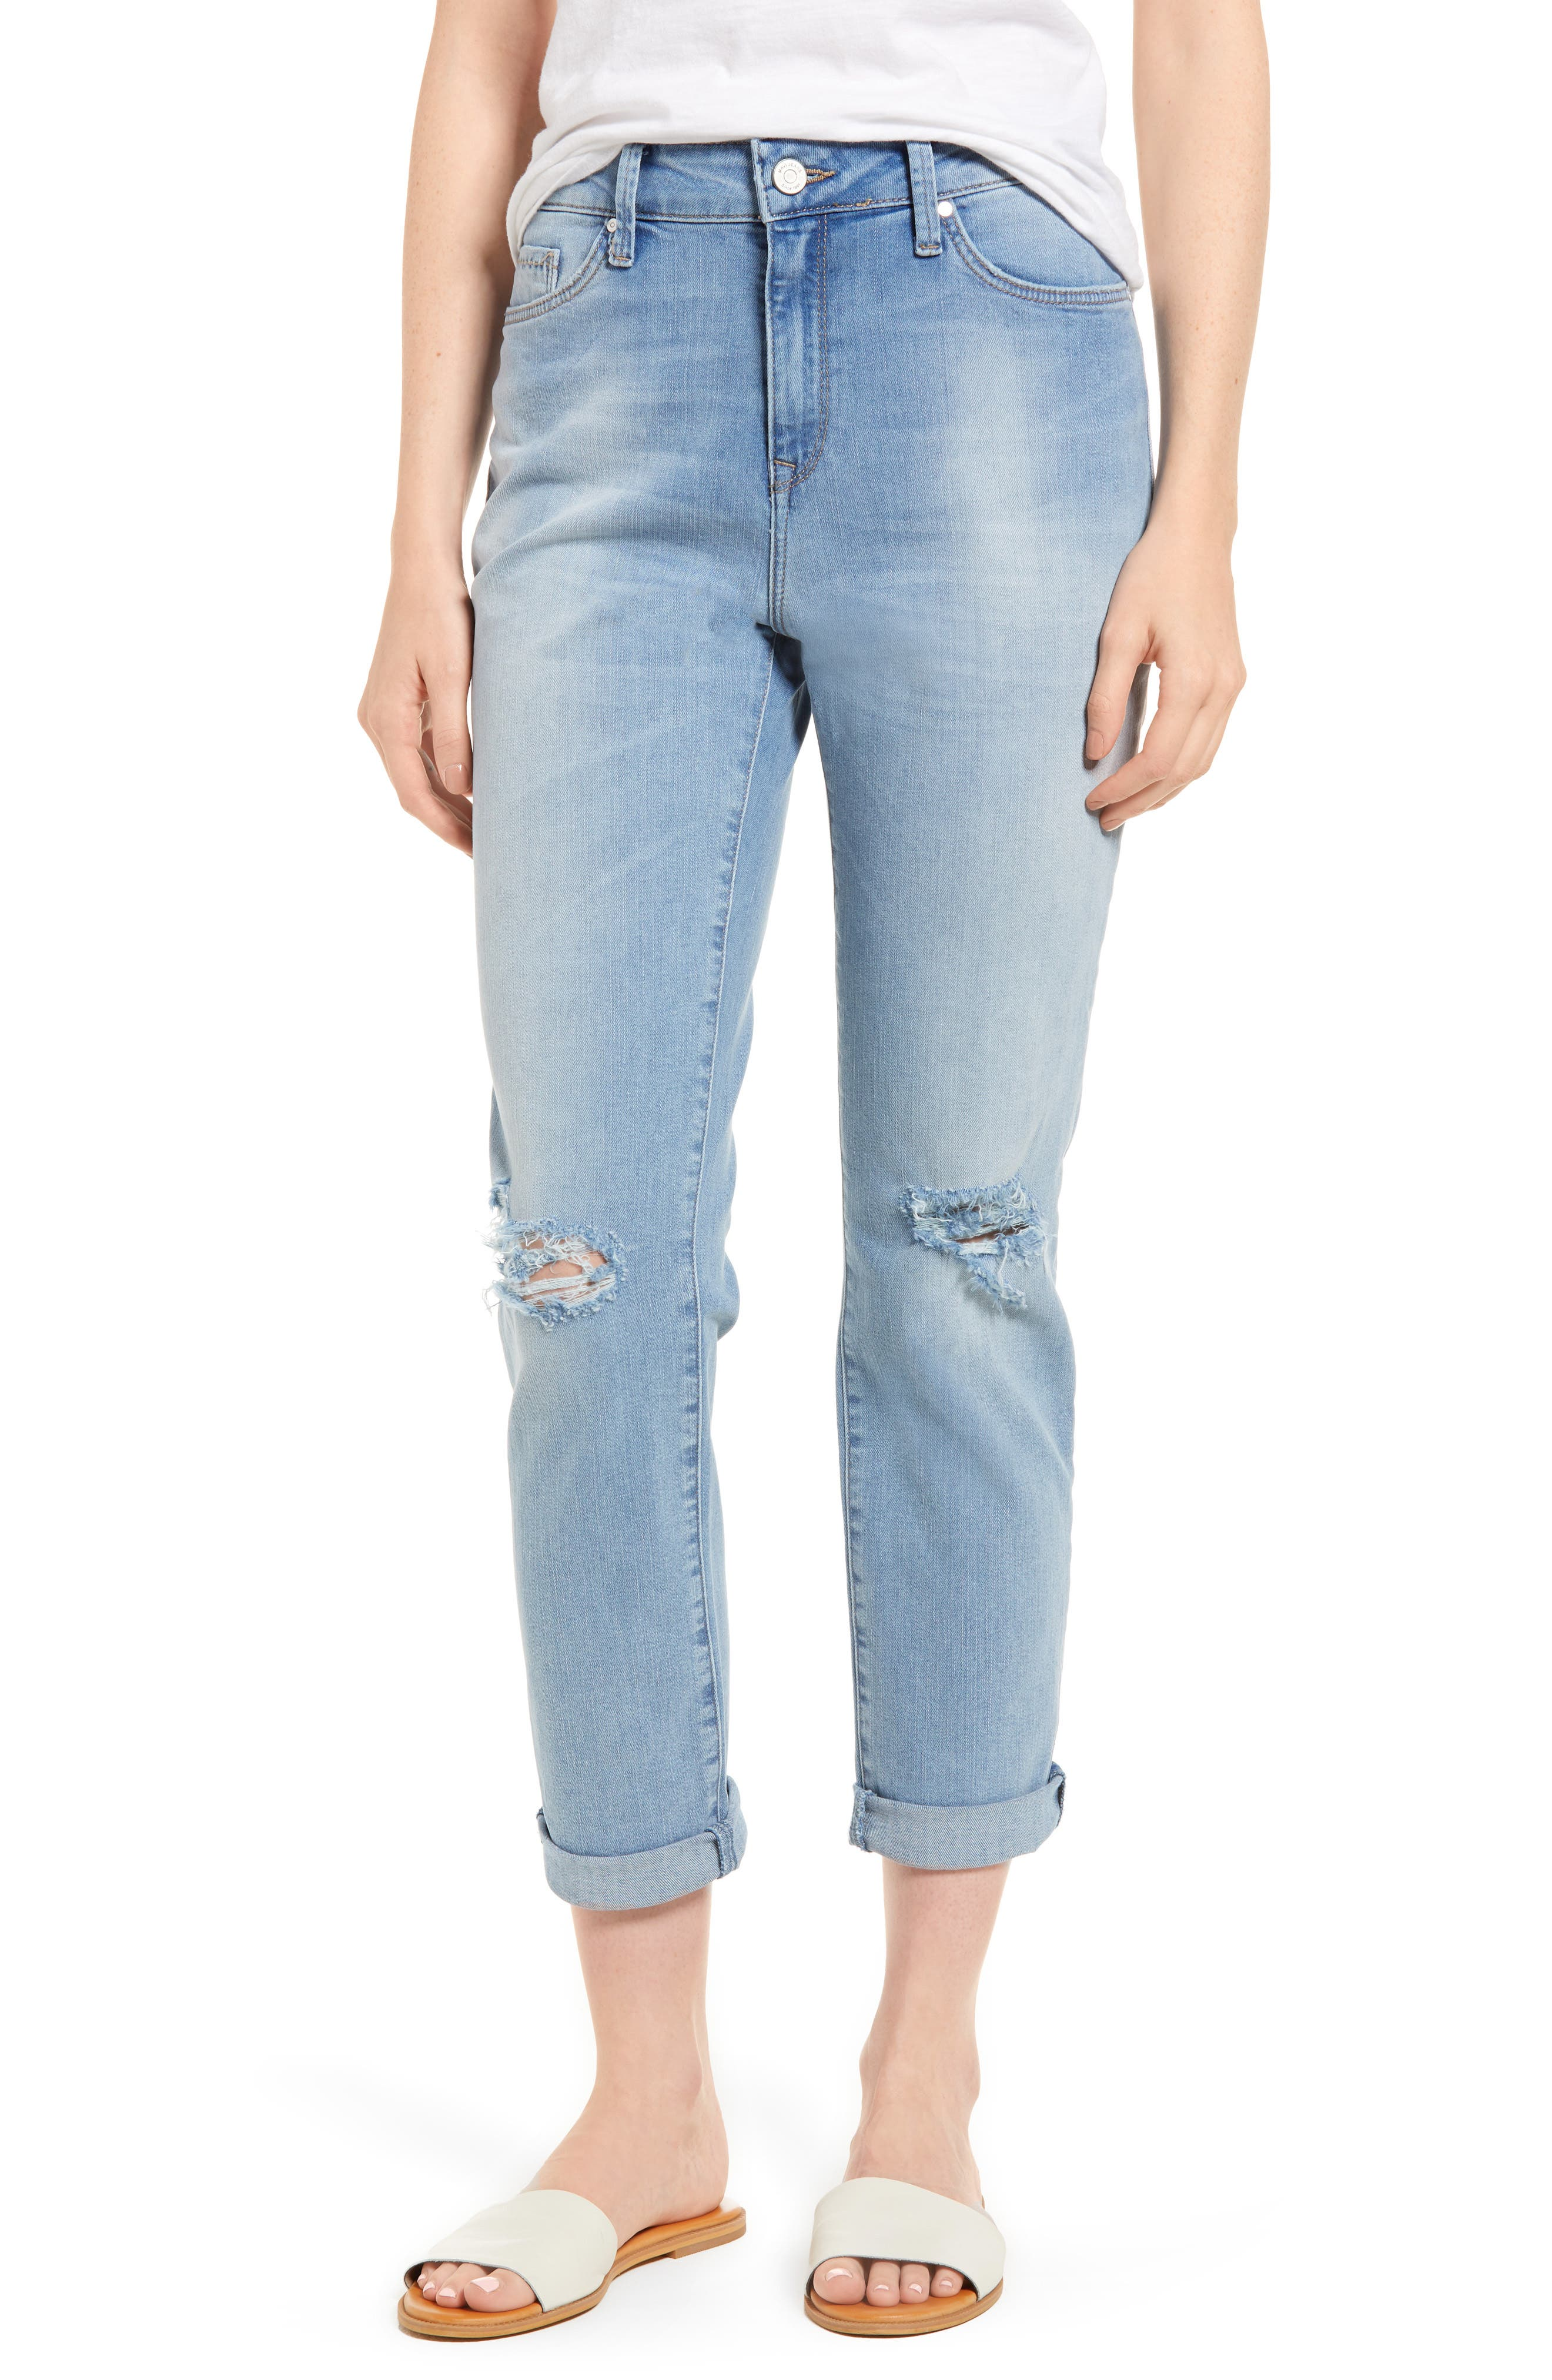 Lea Boyfriend Ripped Jeans,                             Main thumbnail 1, color,                             Light Ripped Vintage